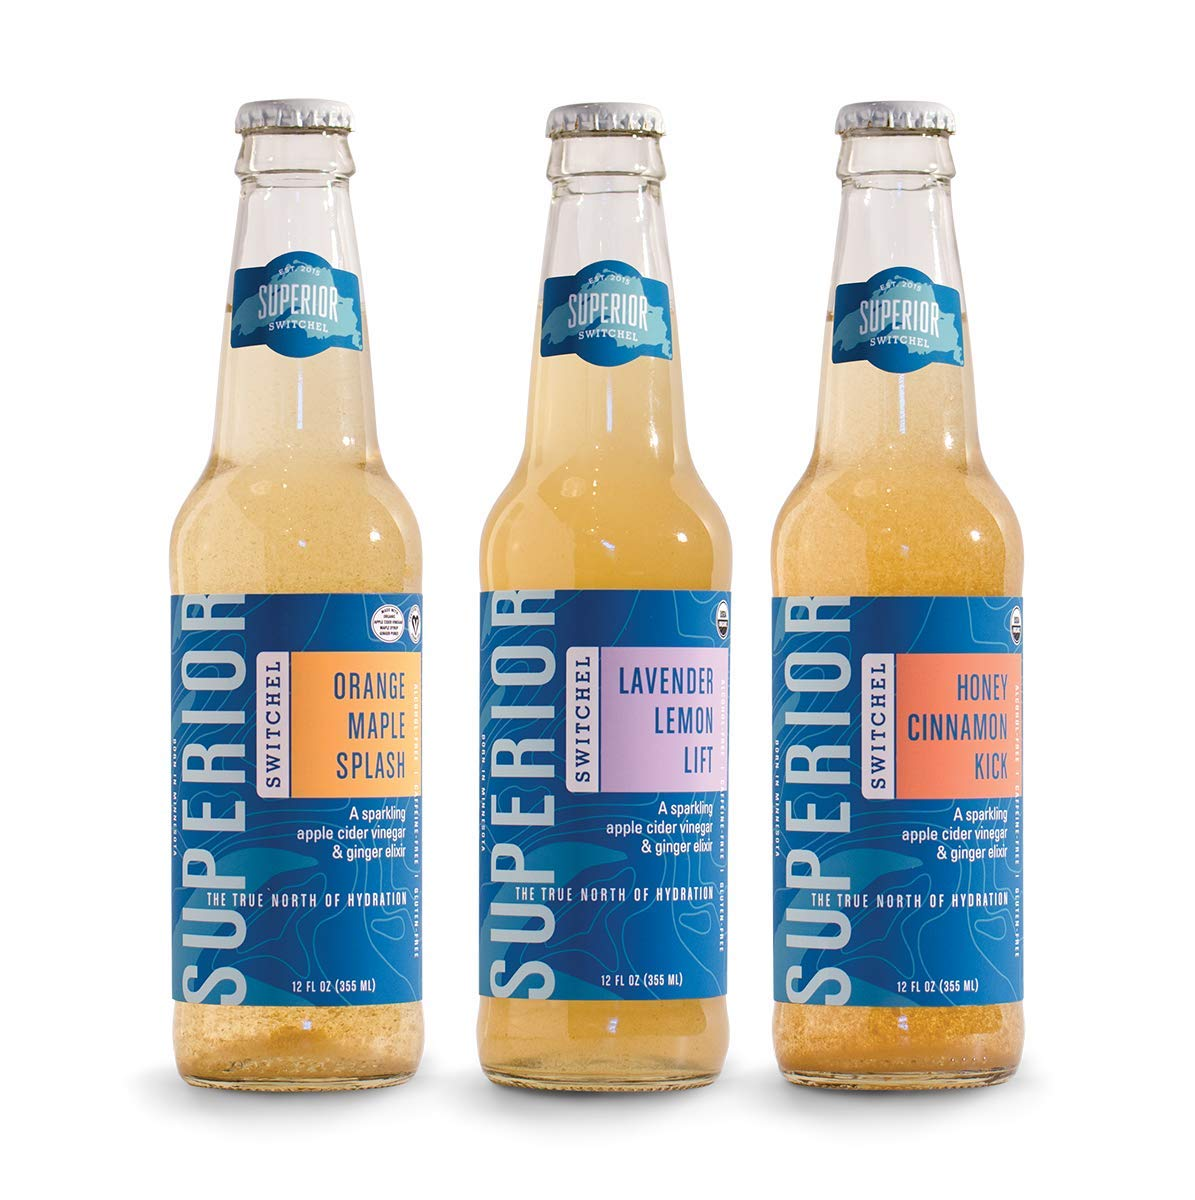 Amazon.com : Up Mountain Swizzle Sparkling Beverage | All